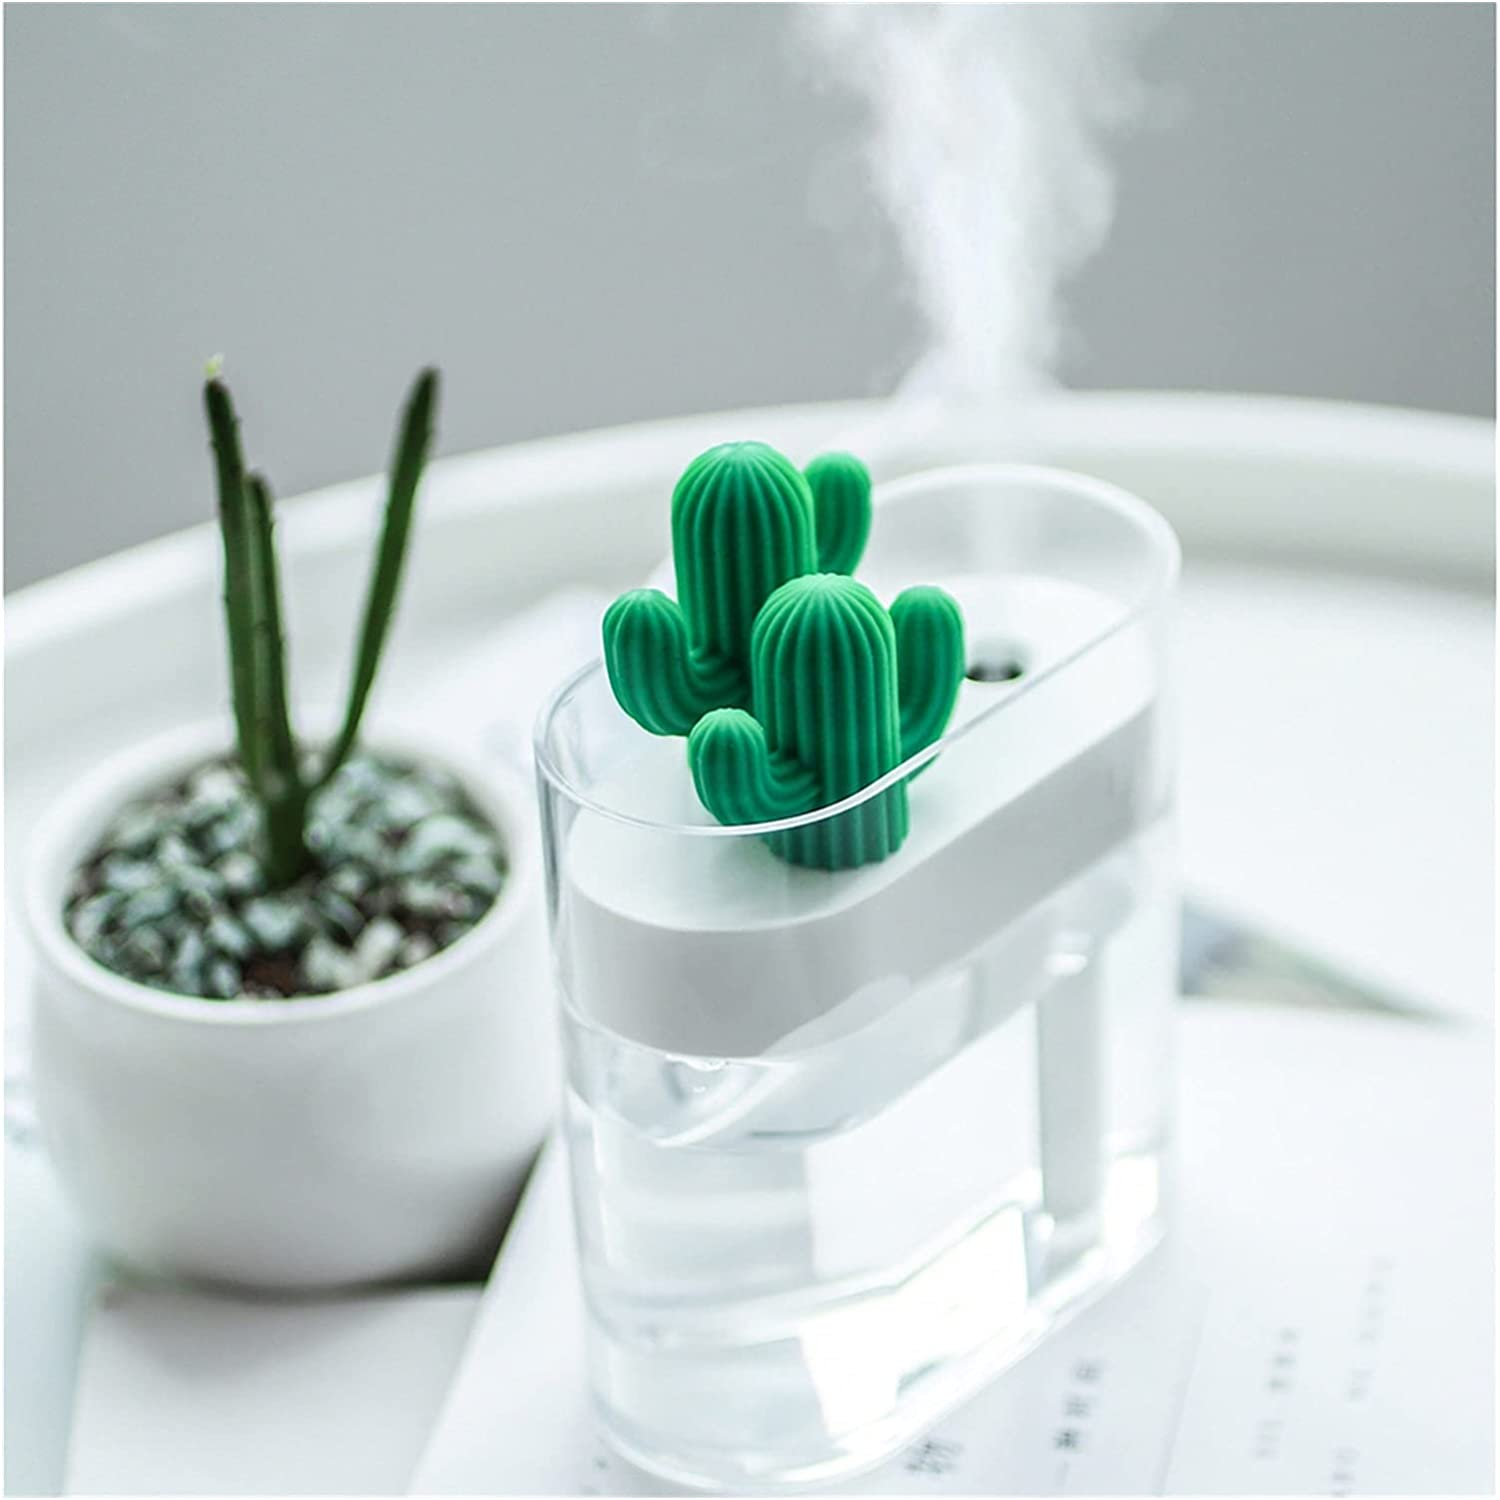 XQKJ Financial sales sale Daily Necessities Transparent Humidifier Shaped Cactus Directly managed store Air